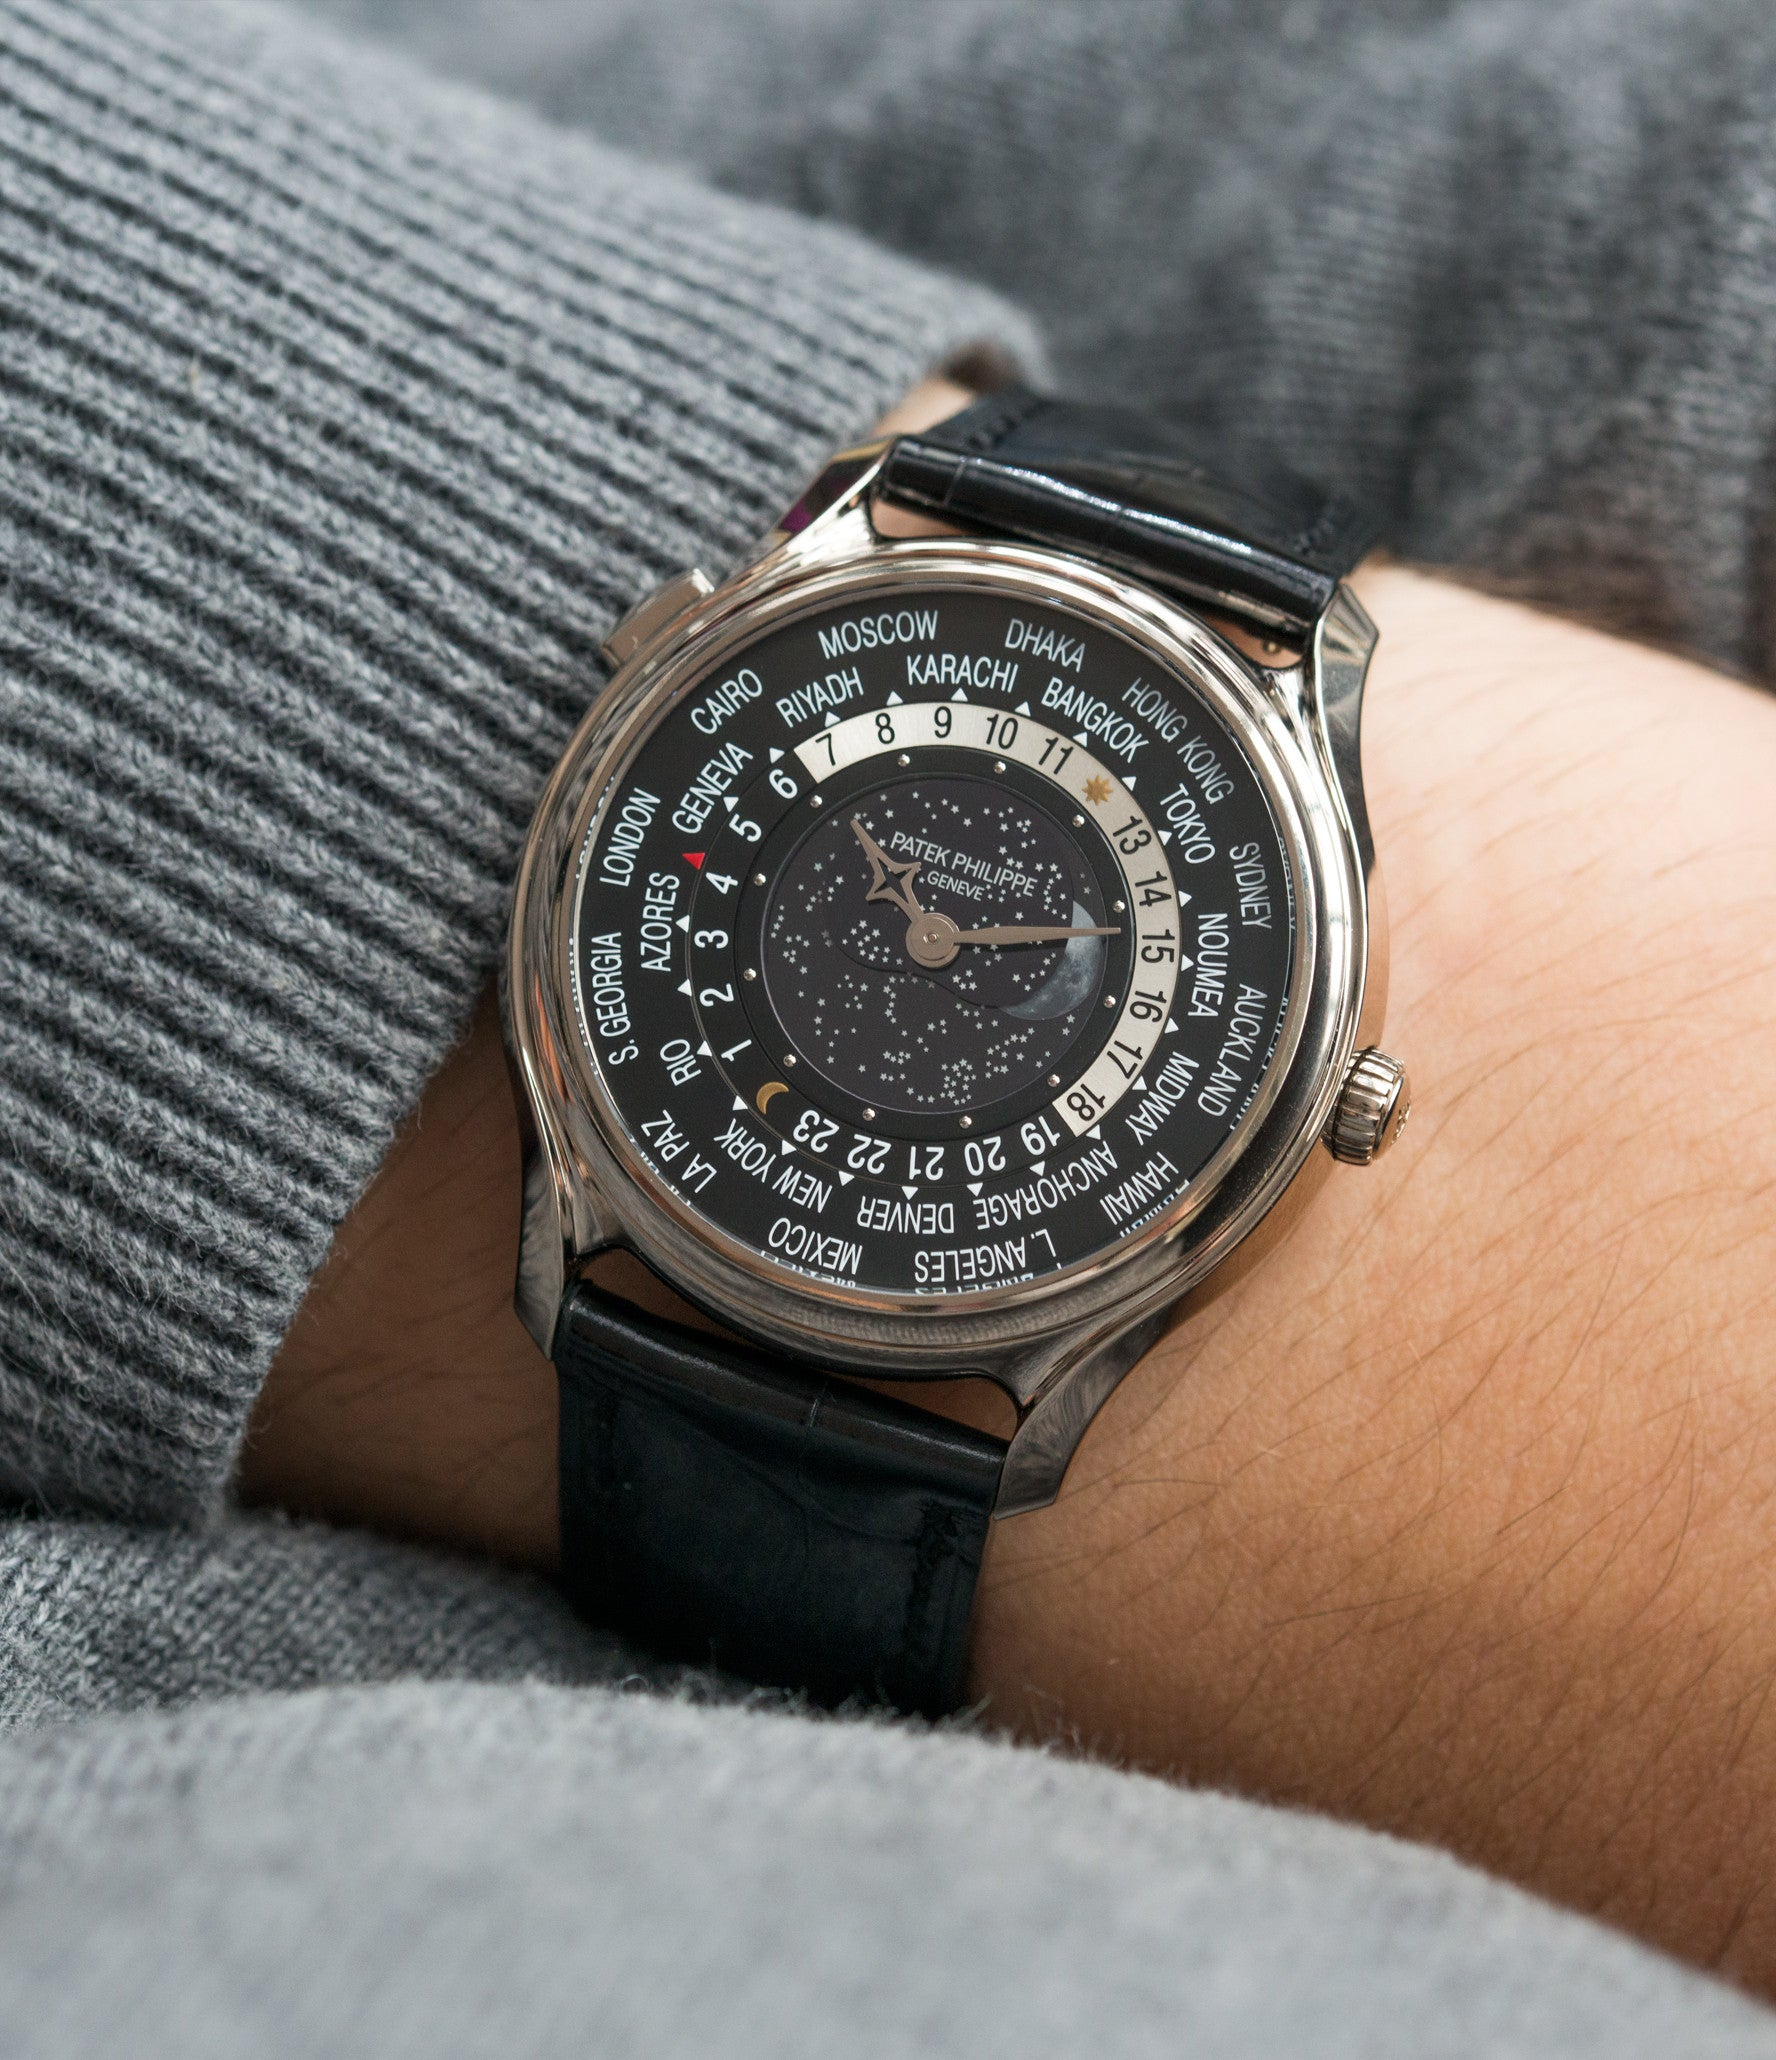 on the wrist Patek Philippe Worldtimer Moonphase 5575G 175th Anniversary white gold preowned dress watch for sale online at A Collected Man London rare watch specialist